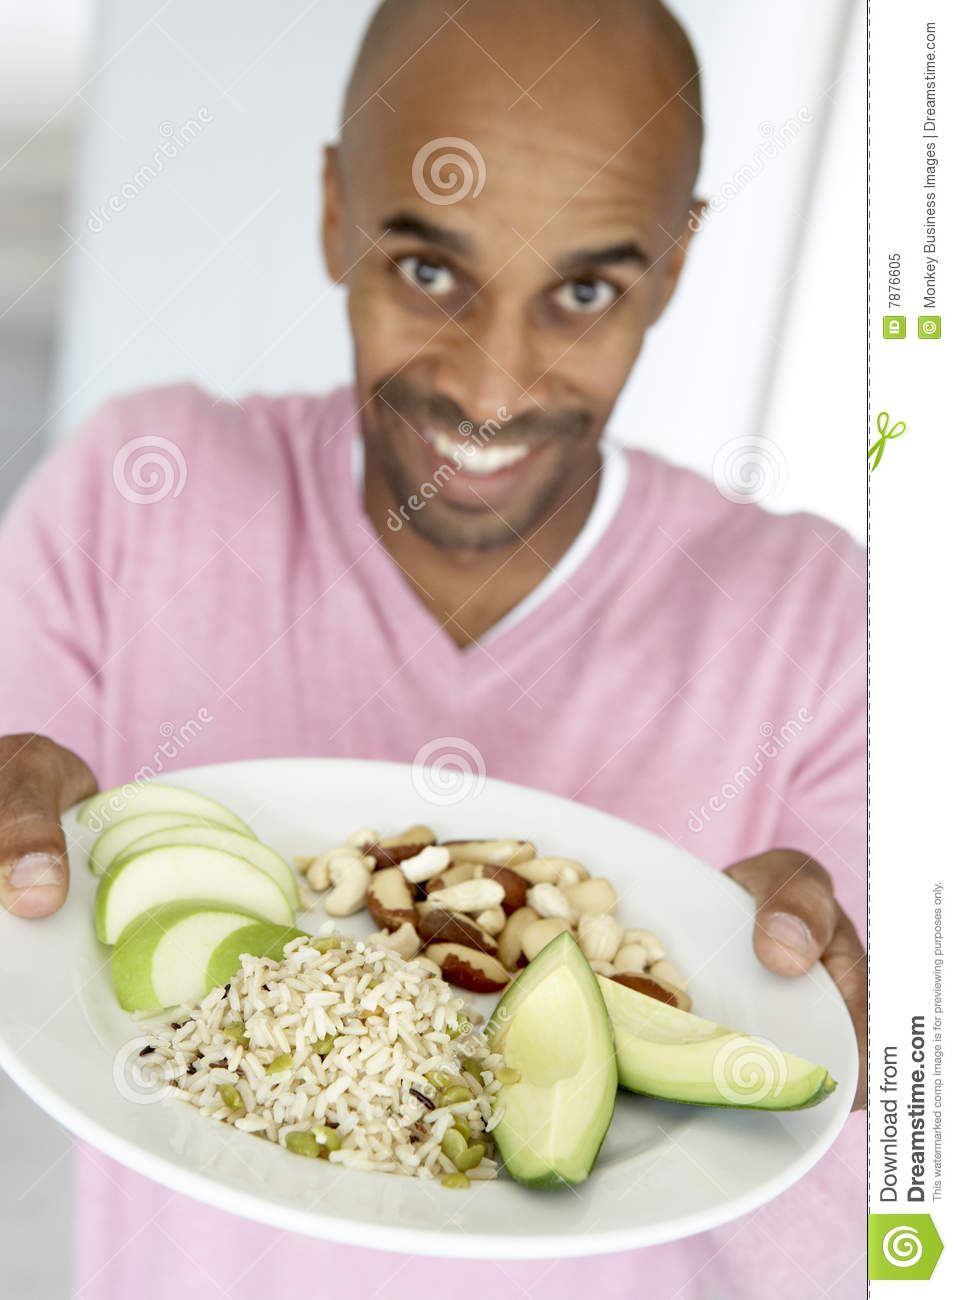 Man Holding Out A Plate With Healthy Foods Royalty Free